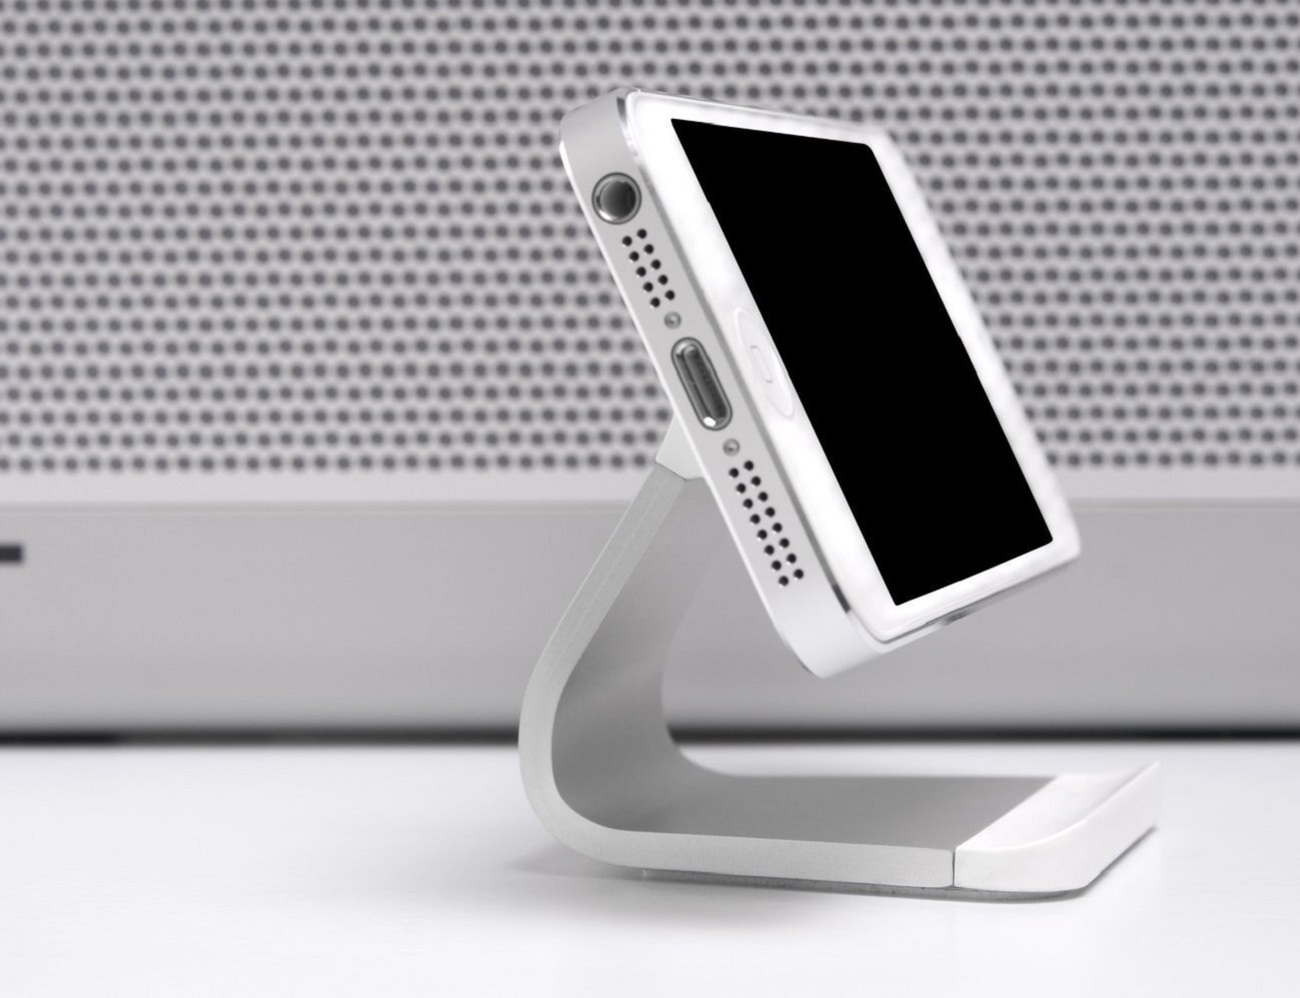 Milo+Stand+%26%238211%3B+For+Most+Smartphones+By+BlueLounge